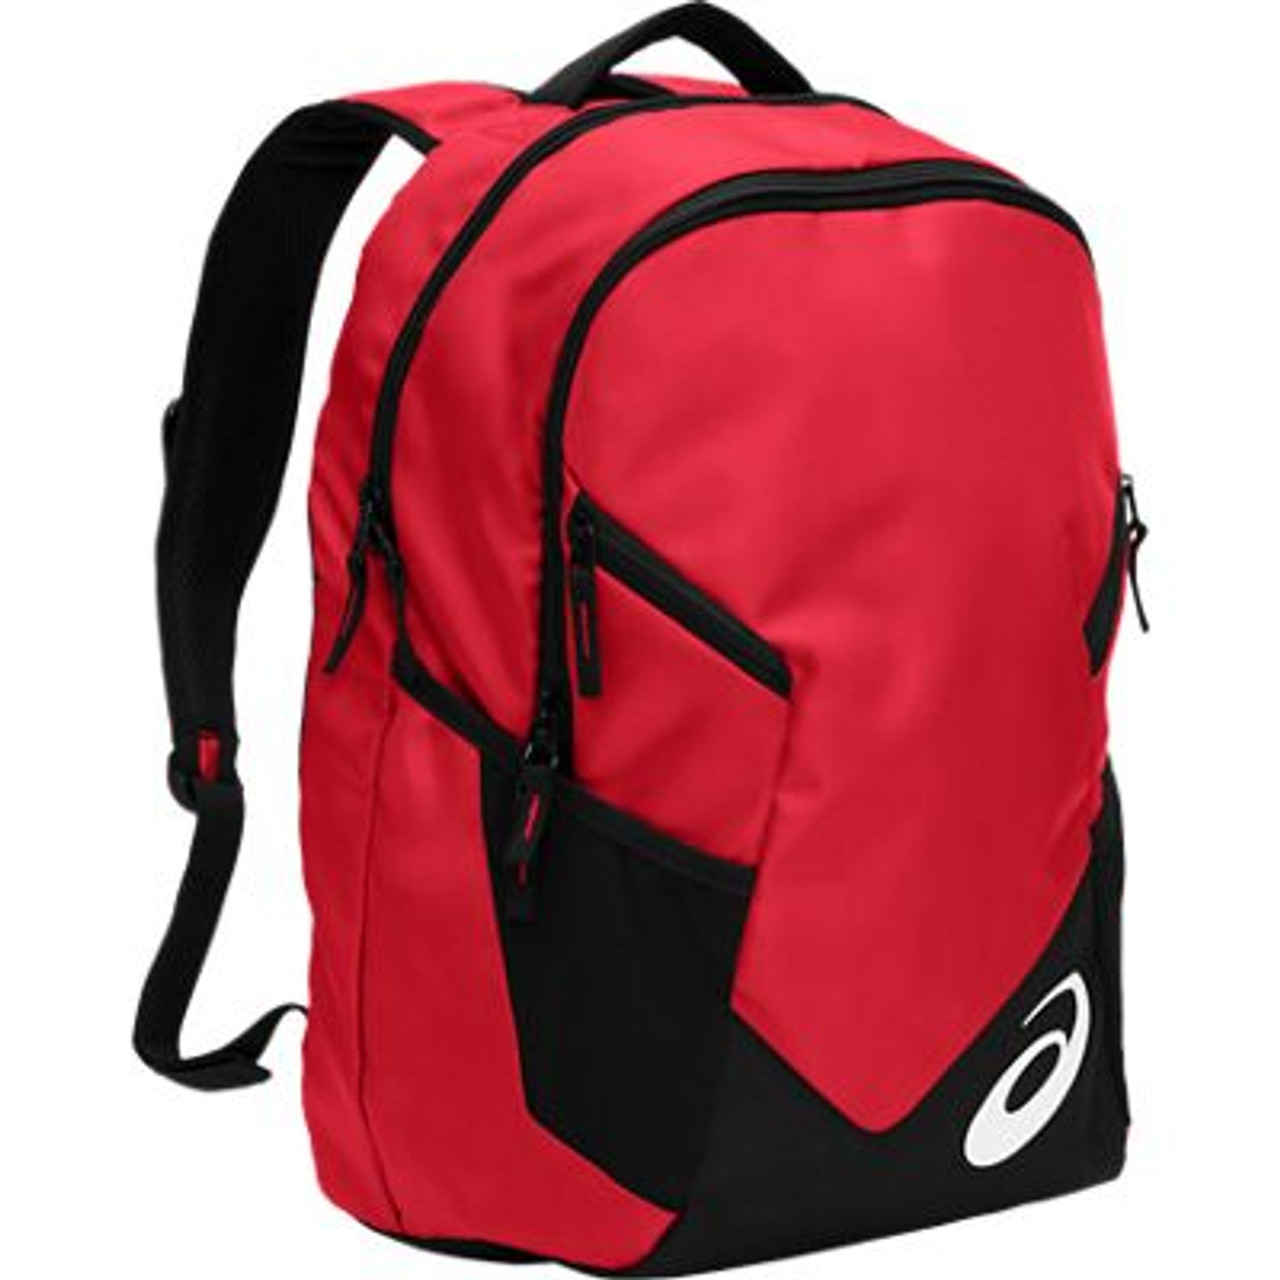 d8afb6a095 RealVolleyball | Asics Edge II Backpack | Asics Bags